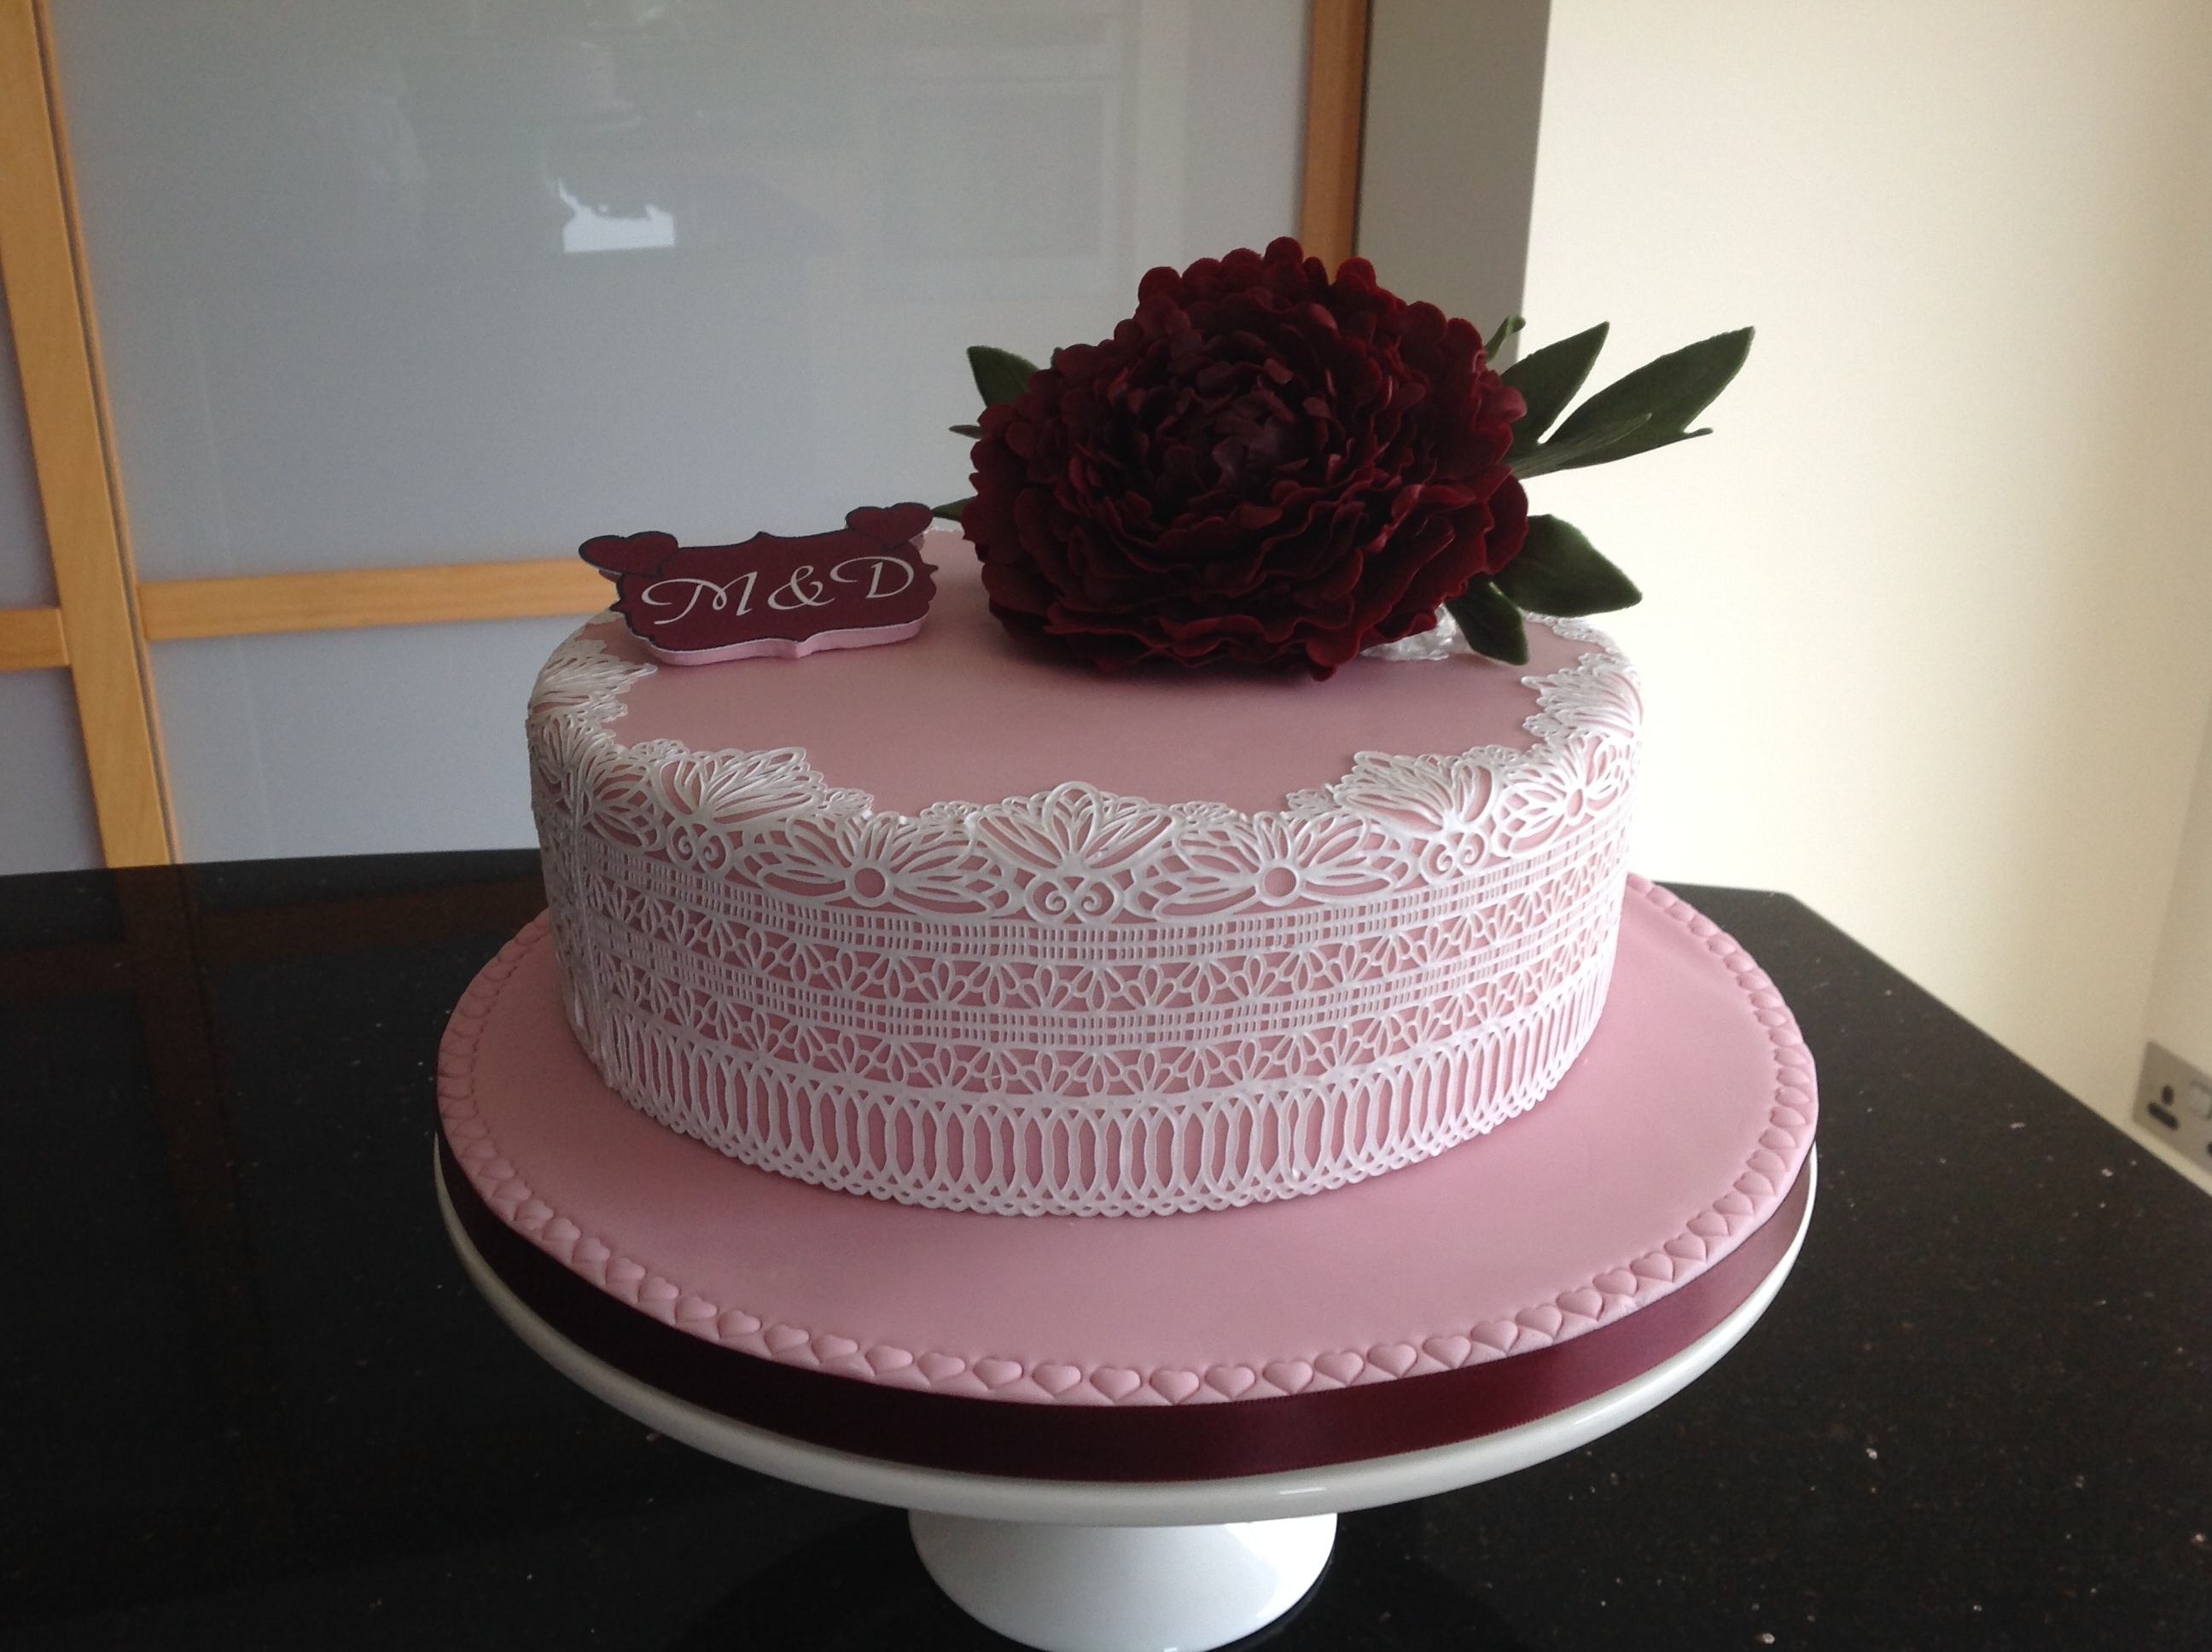 Peony With Cake Lace Ruby wedding anniversary cake.First try with Cake Lace and looking forward to playing with it some more. This was the Serenity Lace Mat by...